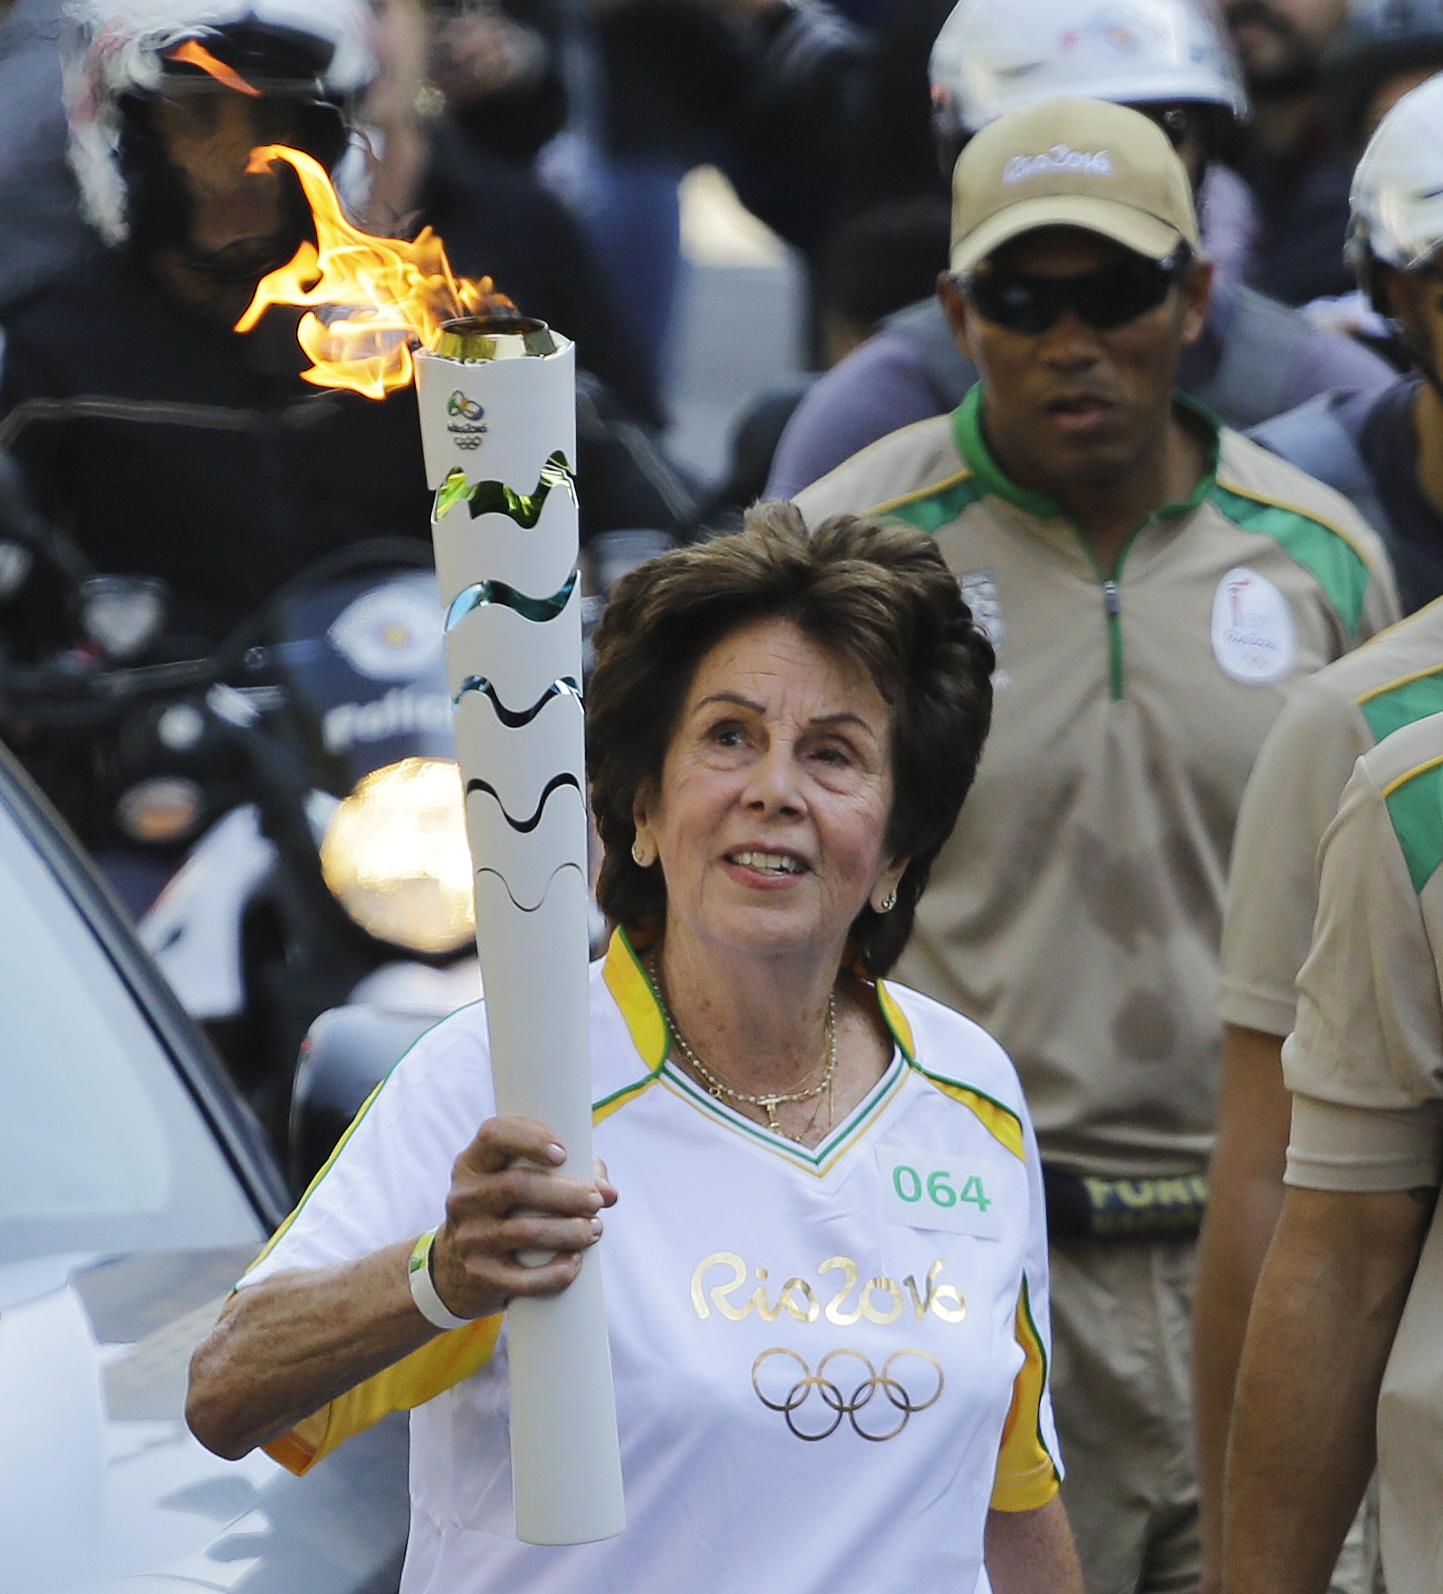 Bueno carried the Olympic torch ahead of the 2016 Games in Rio de Janeiro